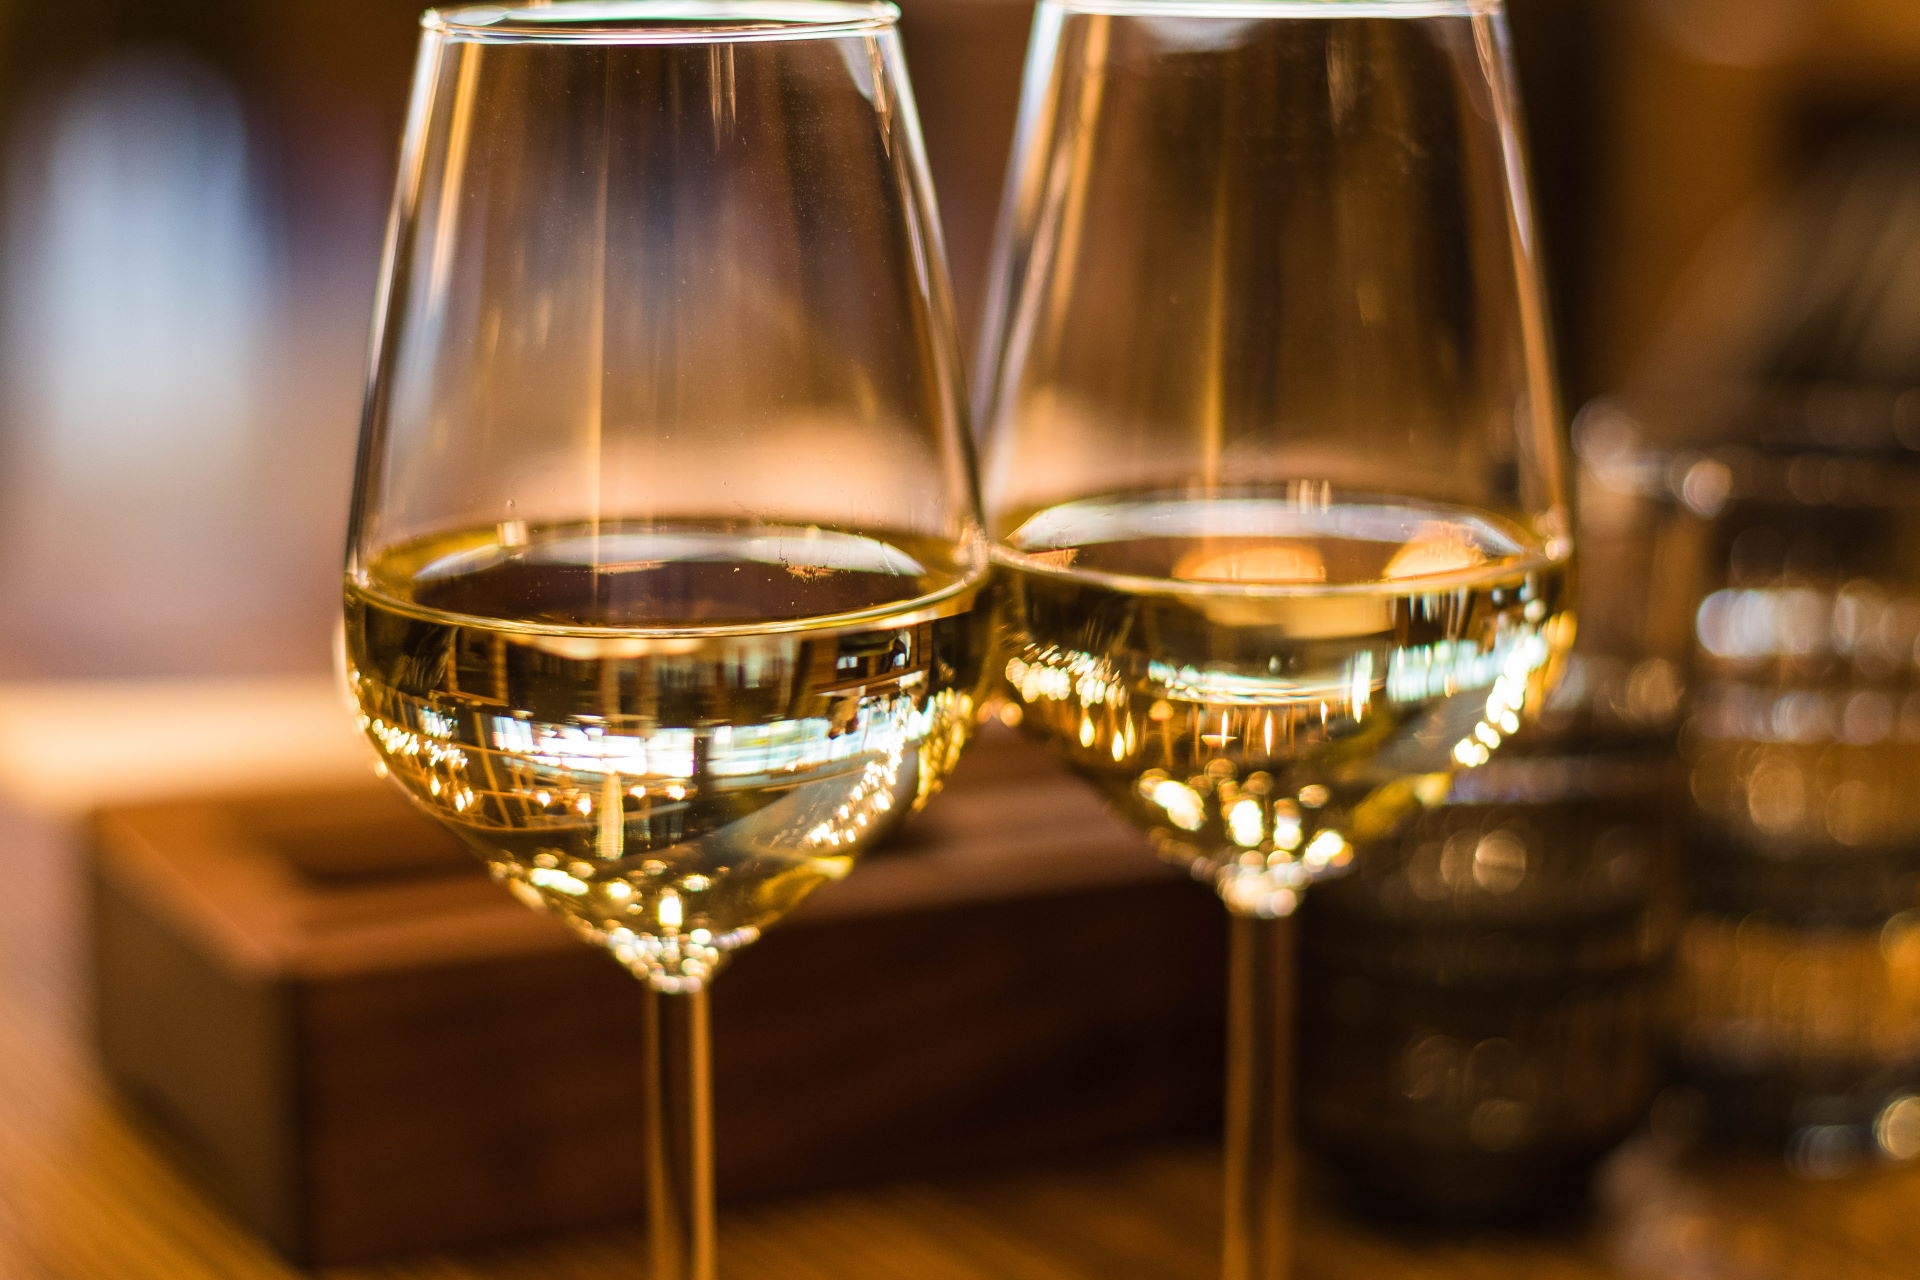 Canva - Close-Up Photography of Wine Glasses